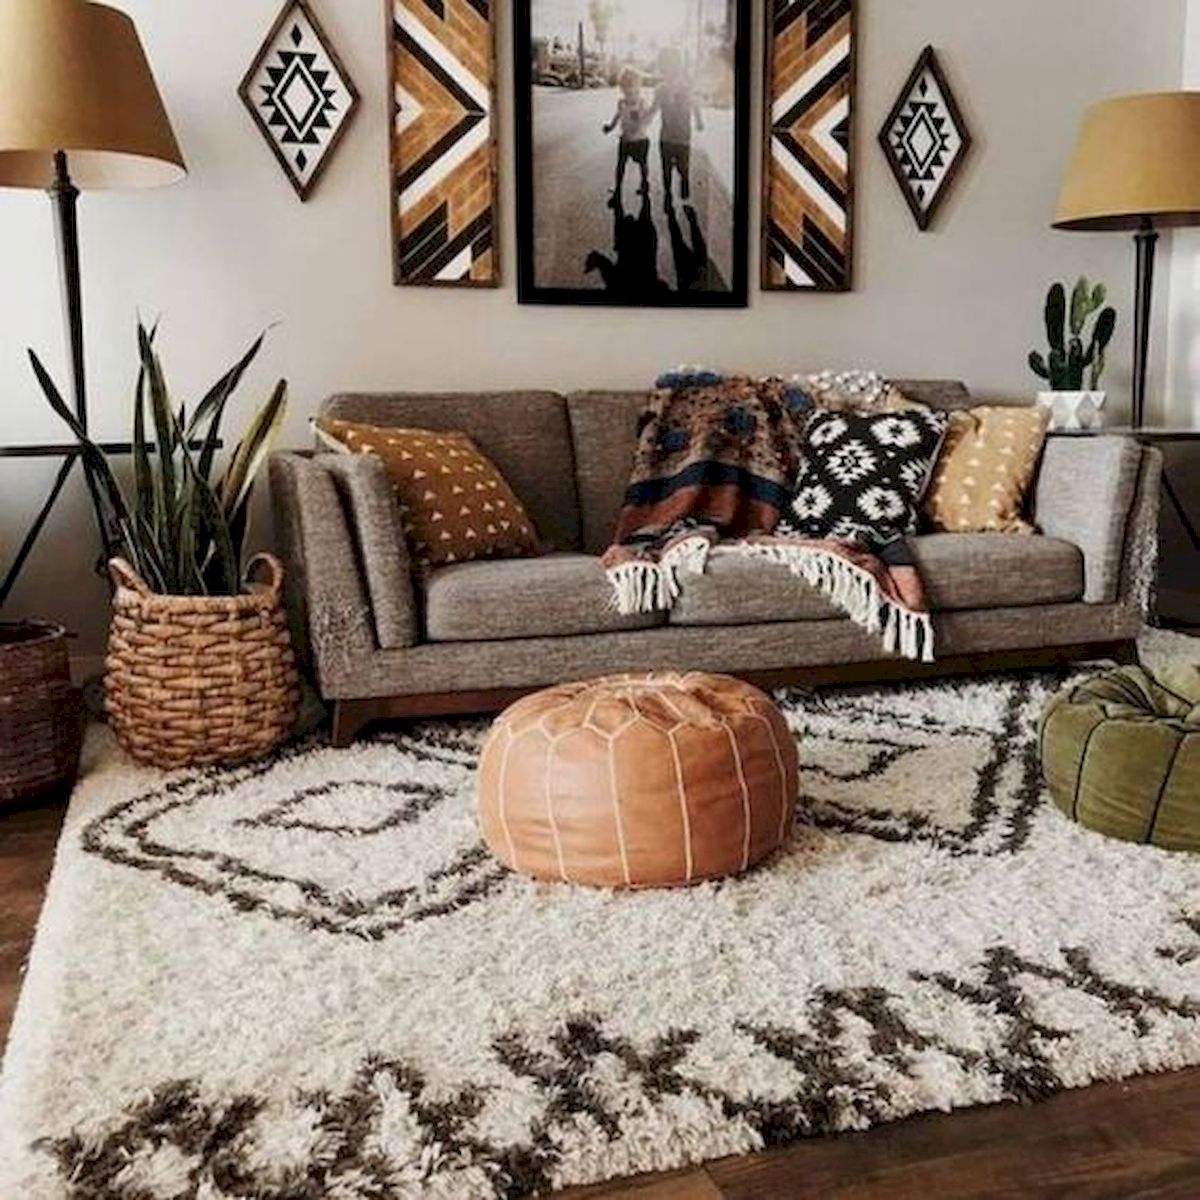 55 Bohemian Living Room Decor Ideas - Googodecor on Living Room Design Ideas  id=56224